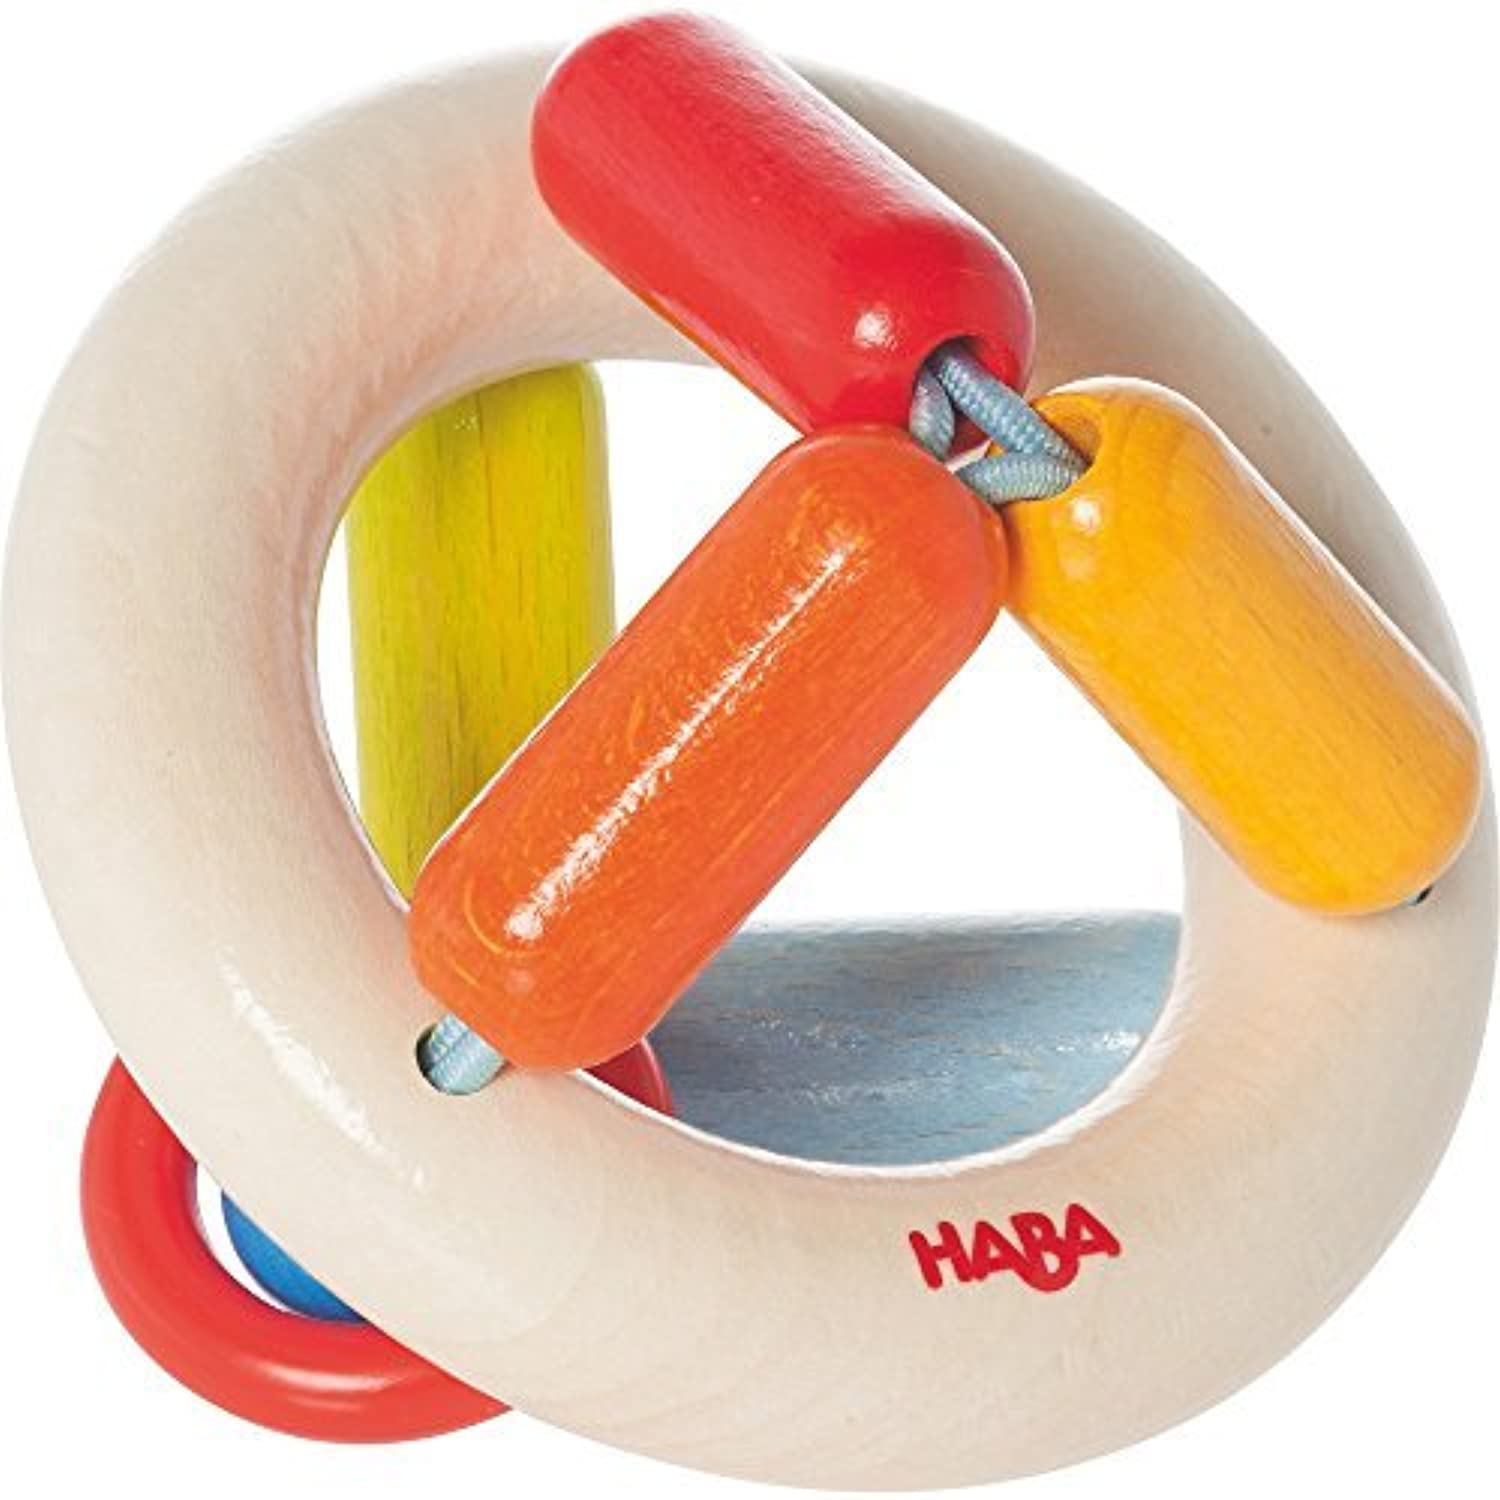 HABA Clutching Toy Rainbow Round Maple Wood Manipulative Rattle & Teether (Made in Germany) [並行輸入品]